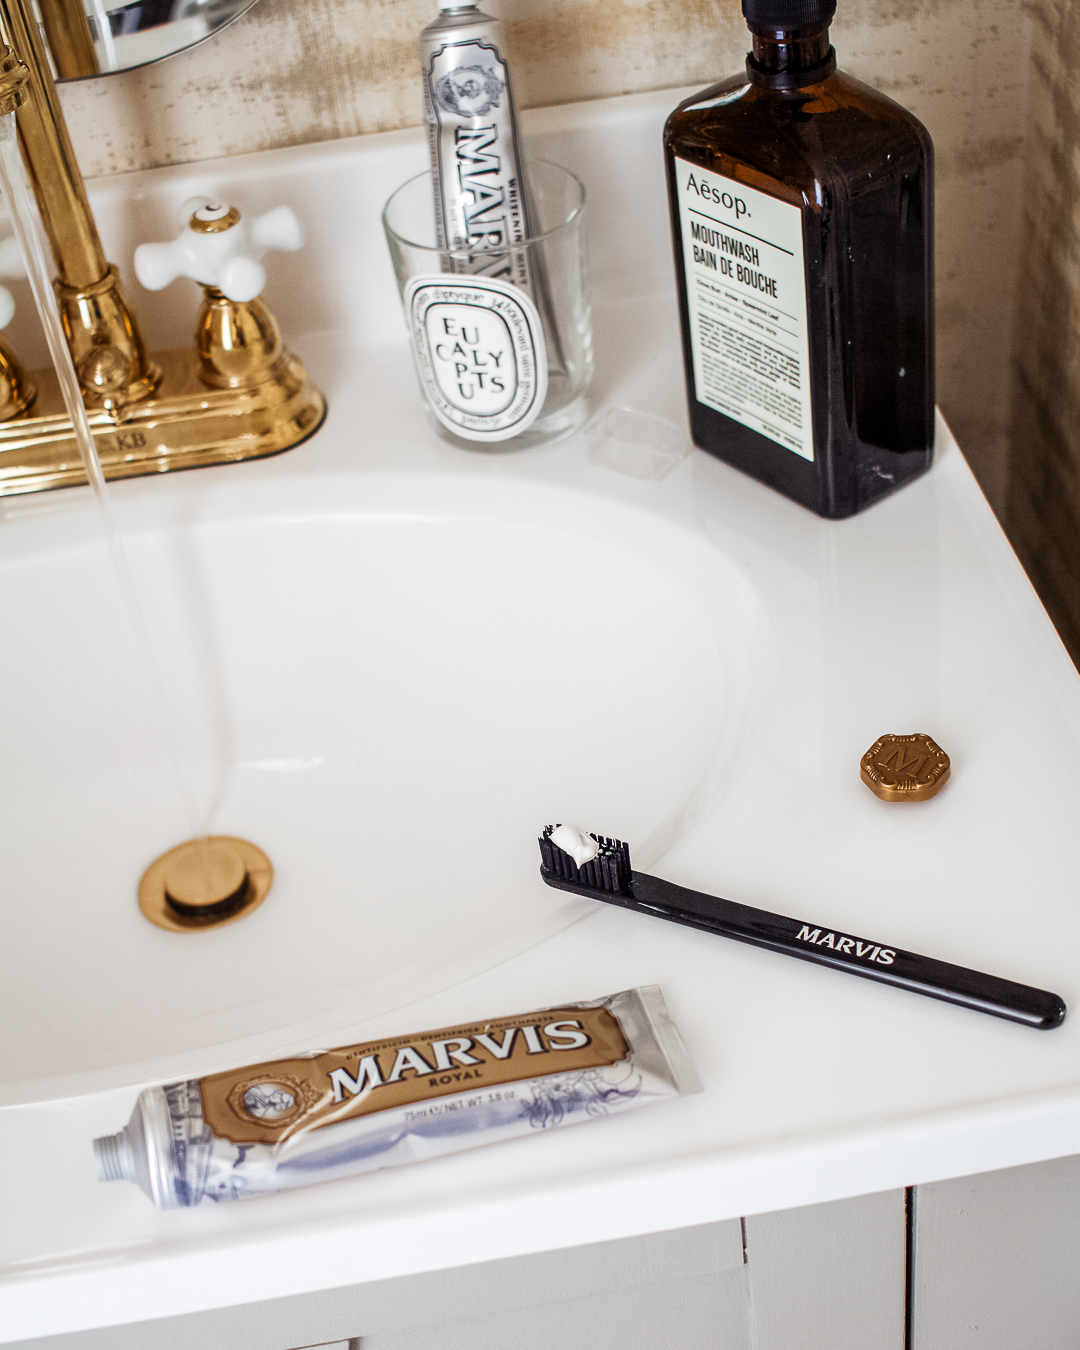 marvis toothpaste and toothbrush aesop mouthwash